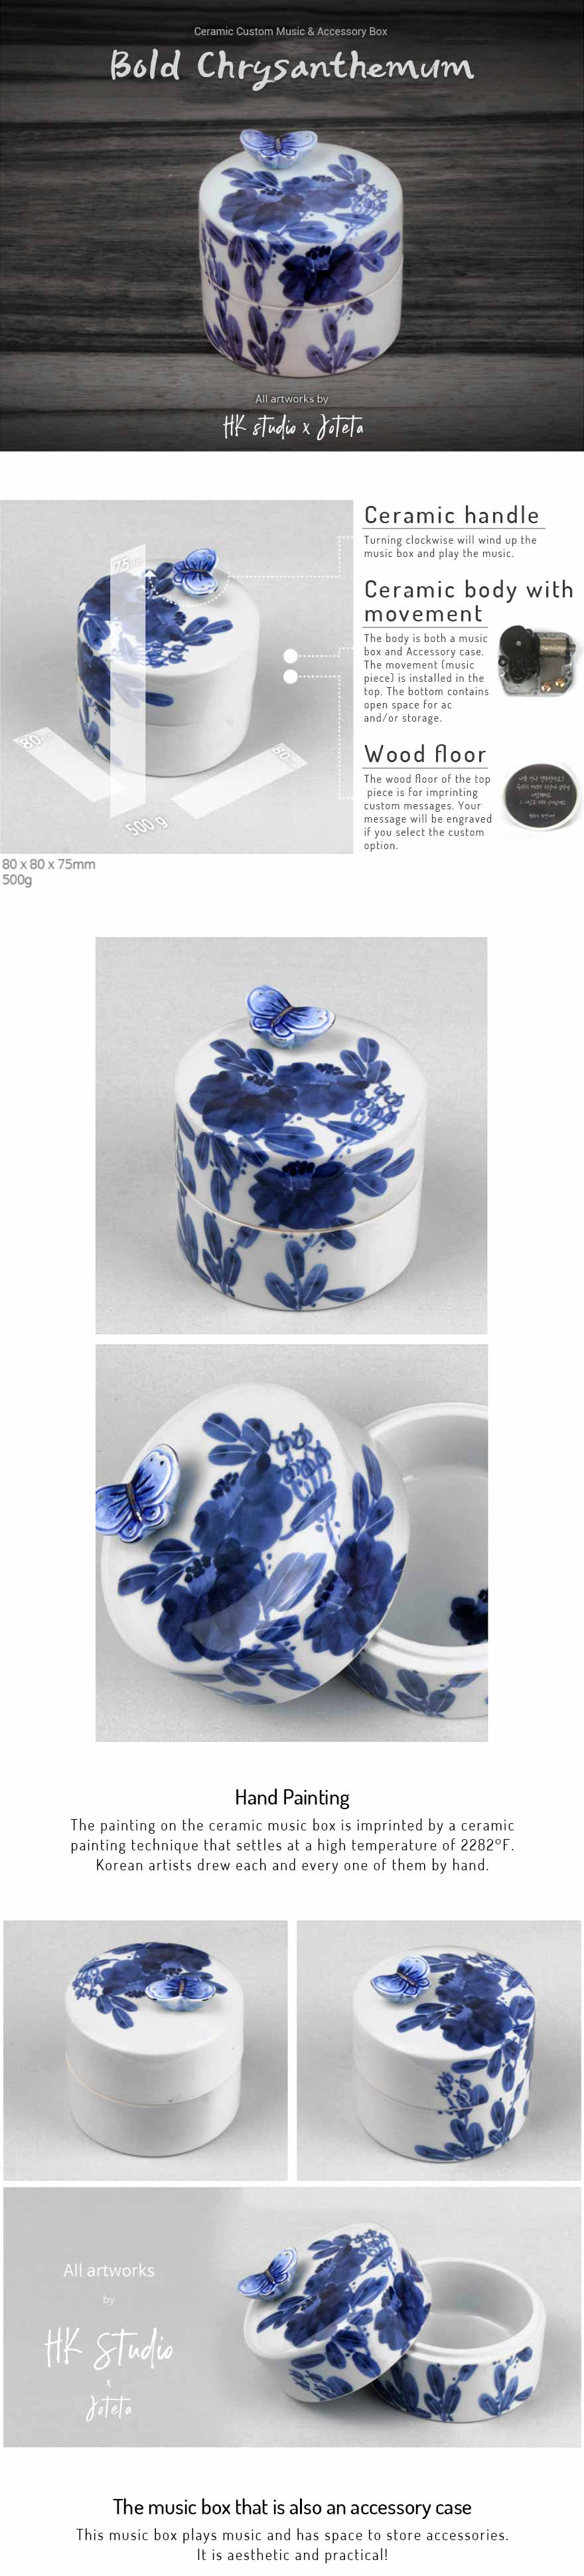 Bold Chrysanthemum Ceramic Custom Music Box that you can fully personalize by choosing your own tune and special message to engrave within the top piece of the music box.